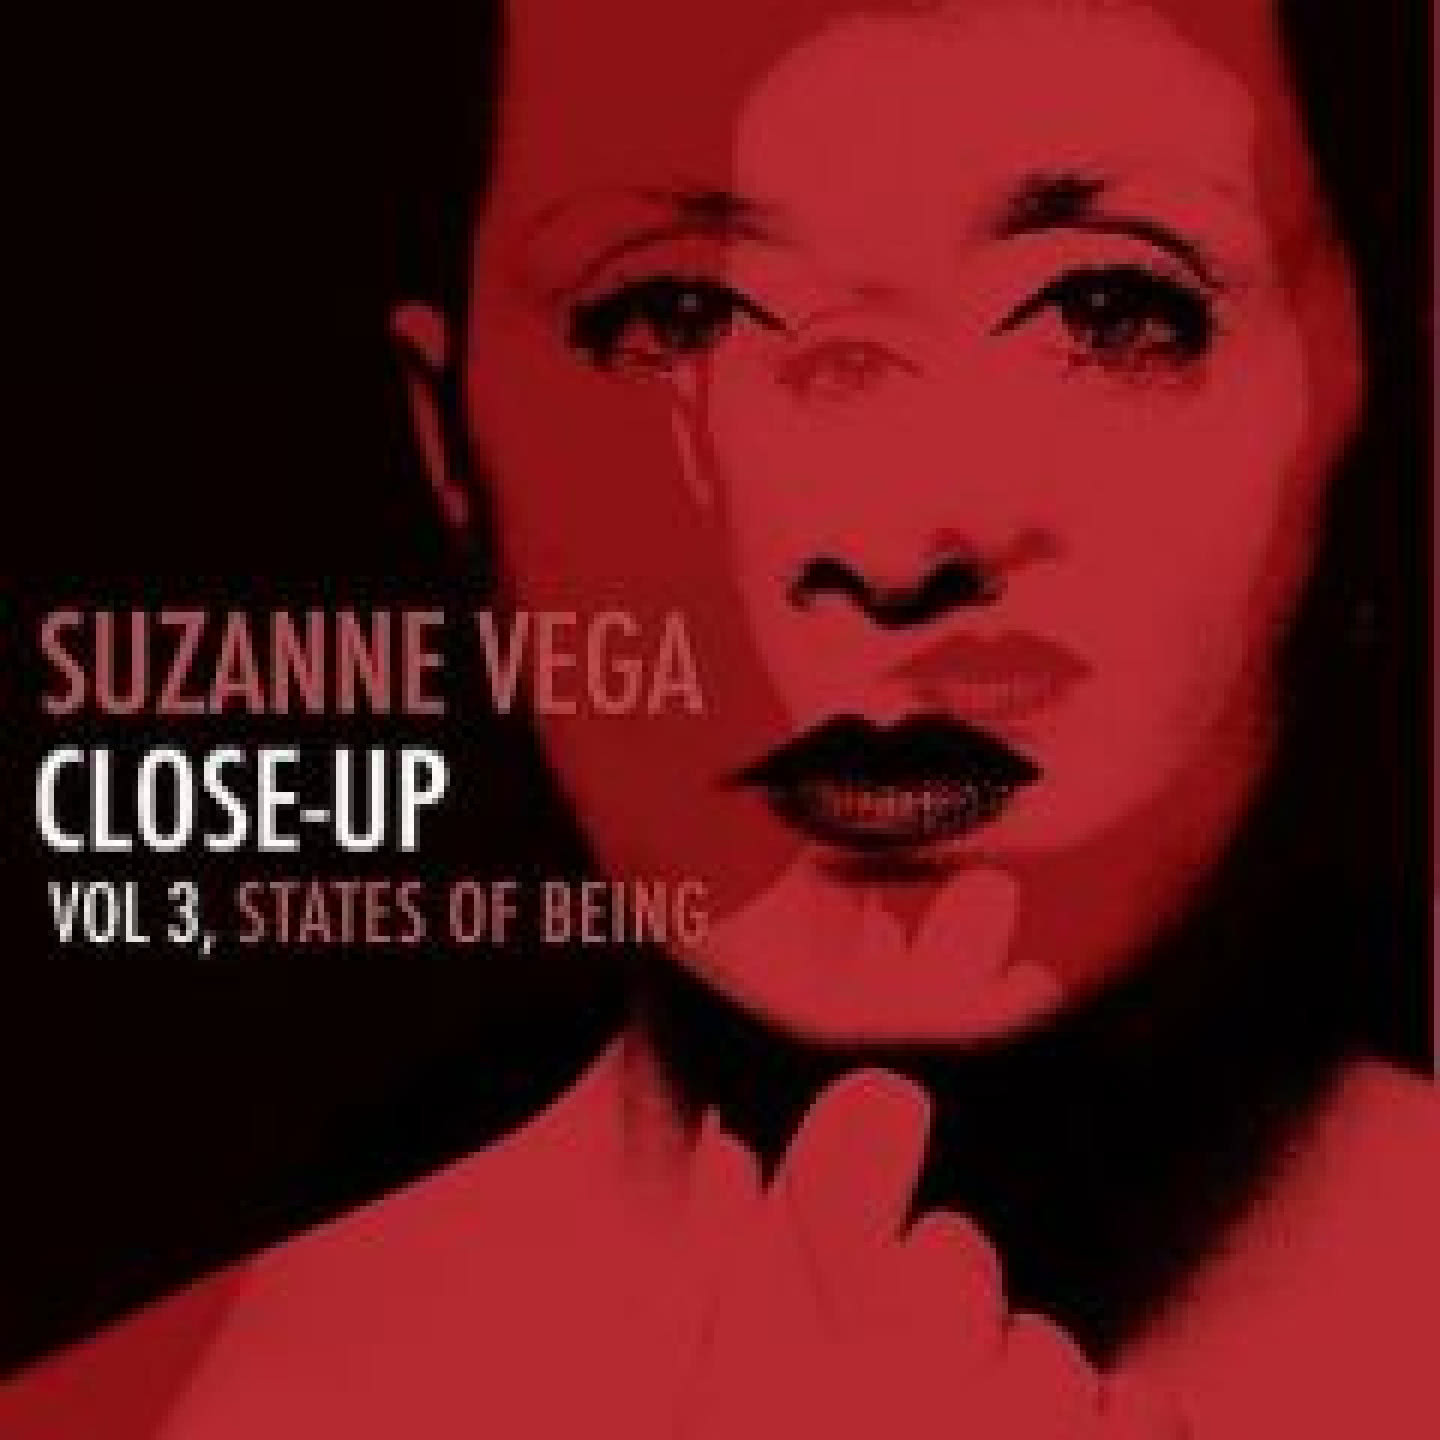 Close-Up vol 3, States Of Being